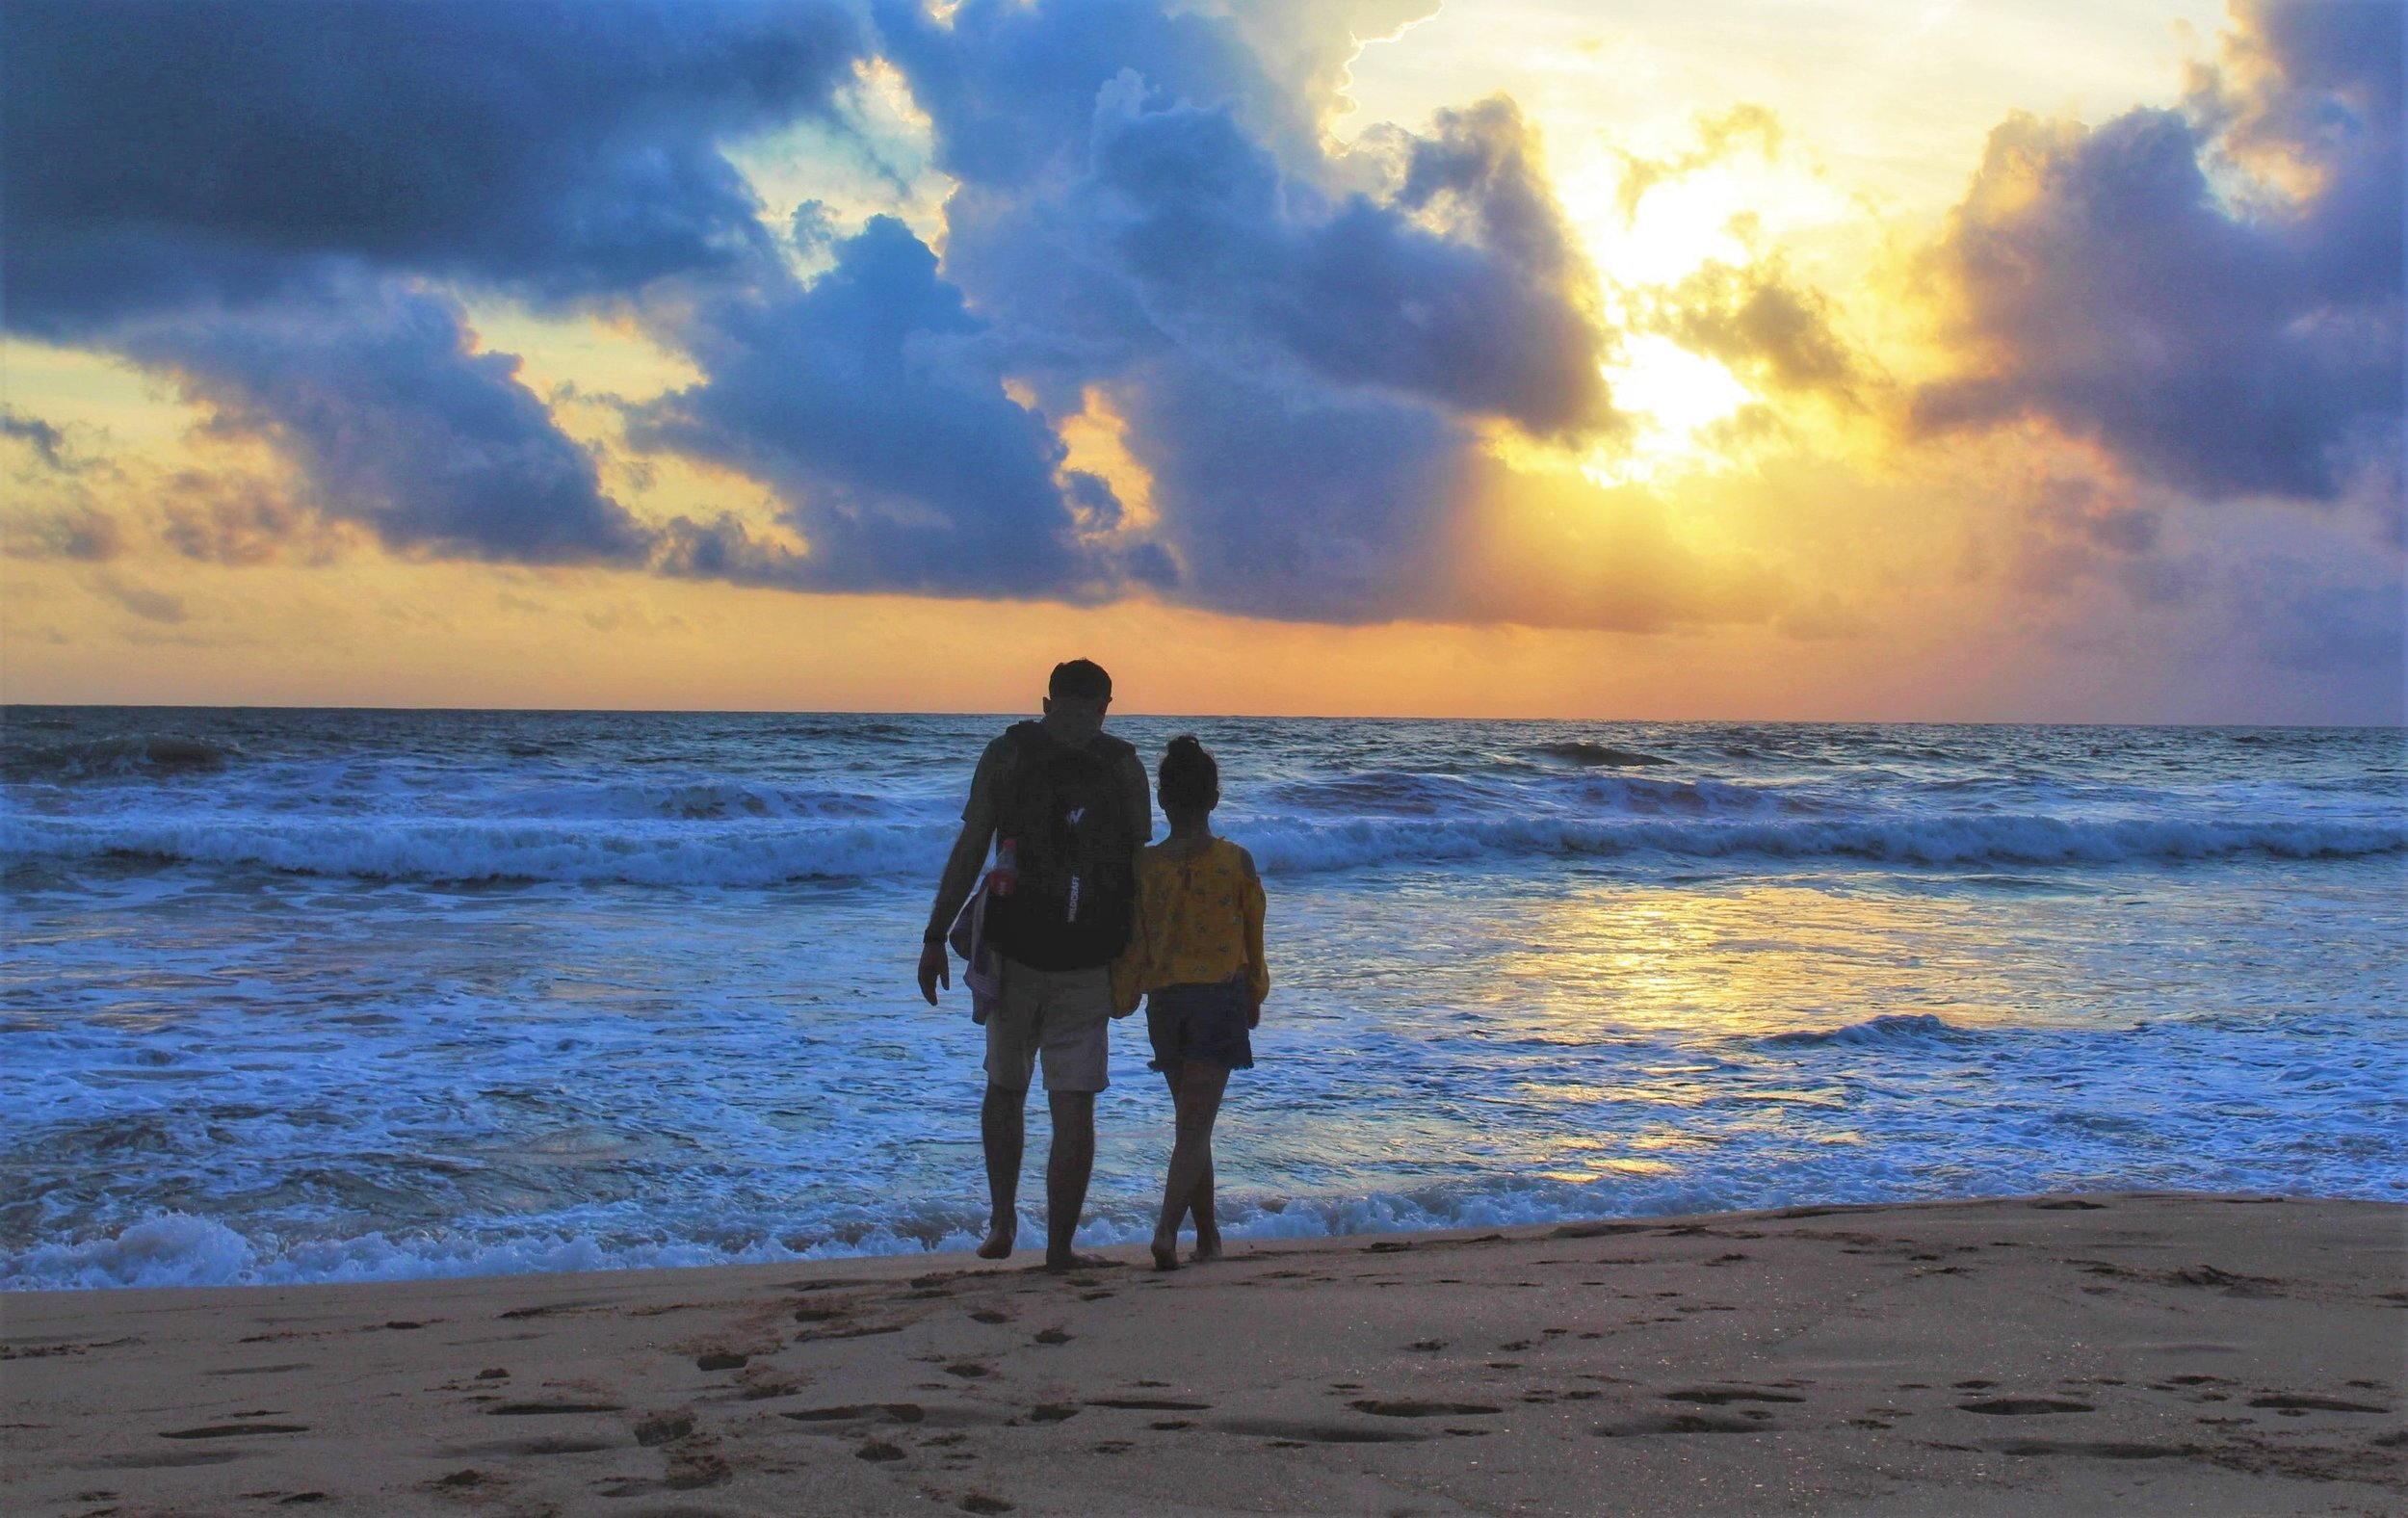 Unawantuna definitely made it on our list of the best beaches in Sri Lanka.